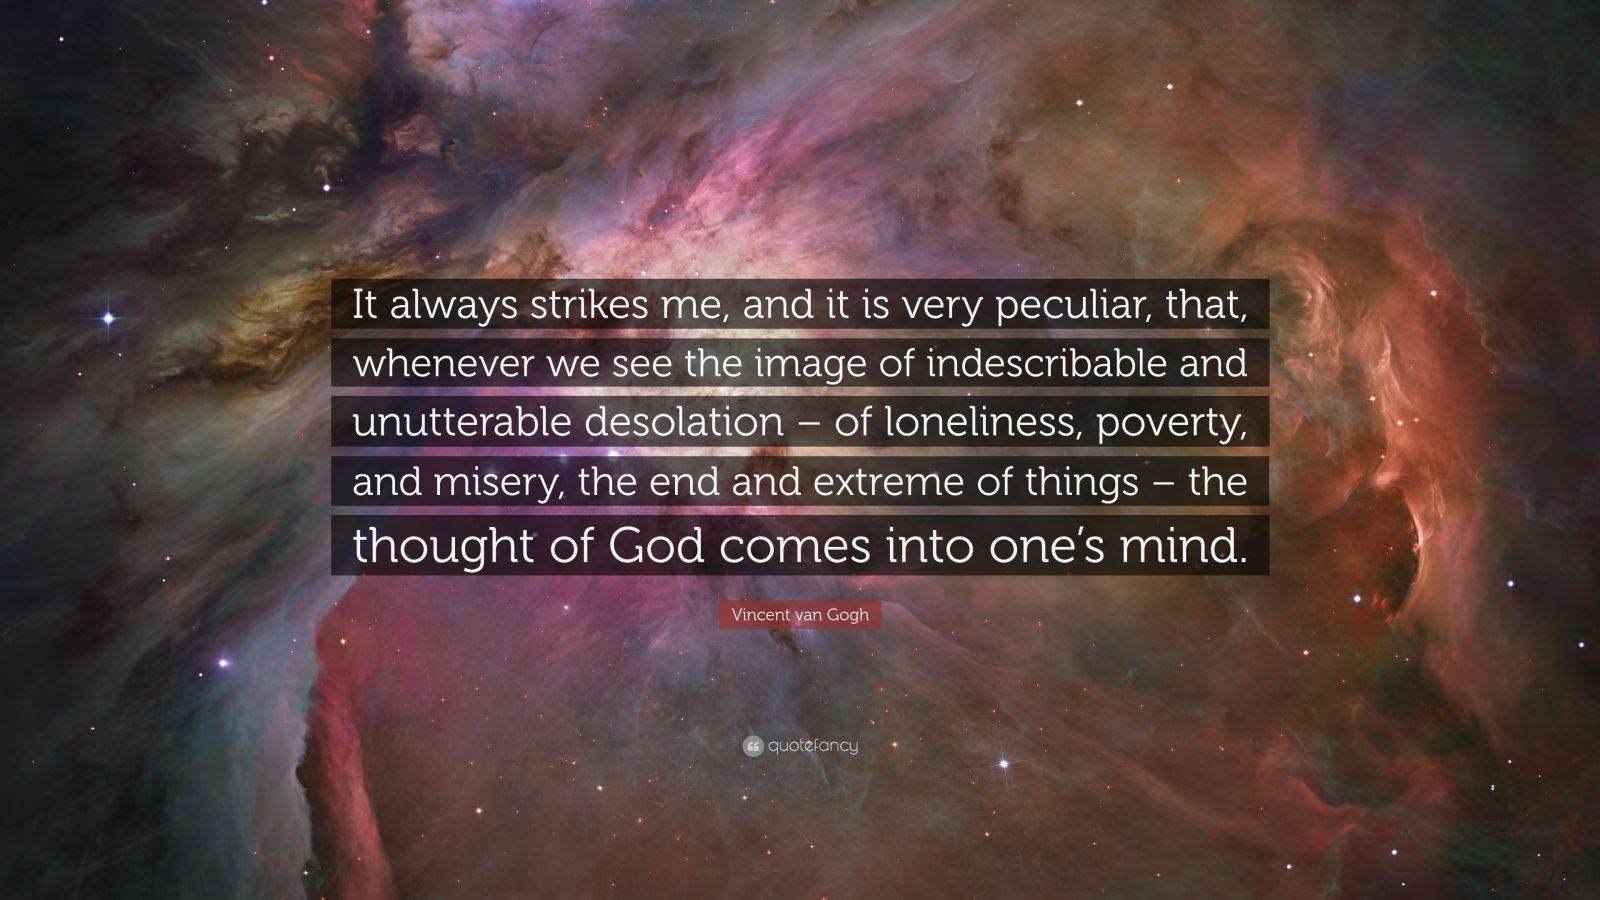 """Vincent Van Gogh Quotes: """"It always strikes me, and it is very peculiar, that, whenever we see the image of indescribable and unutterable desolation – of loneliness, poverty, and misery, the end and extreme of things – the thought of God comes into one's mind."""" — Vincent van Gogh"""